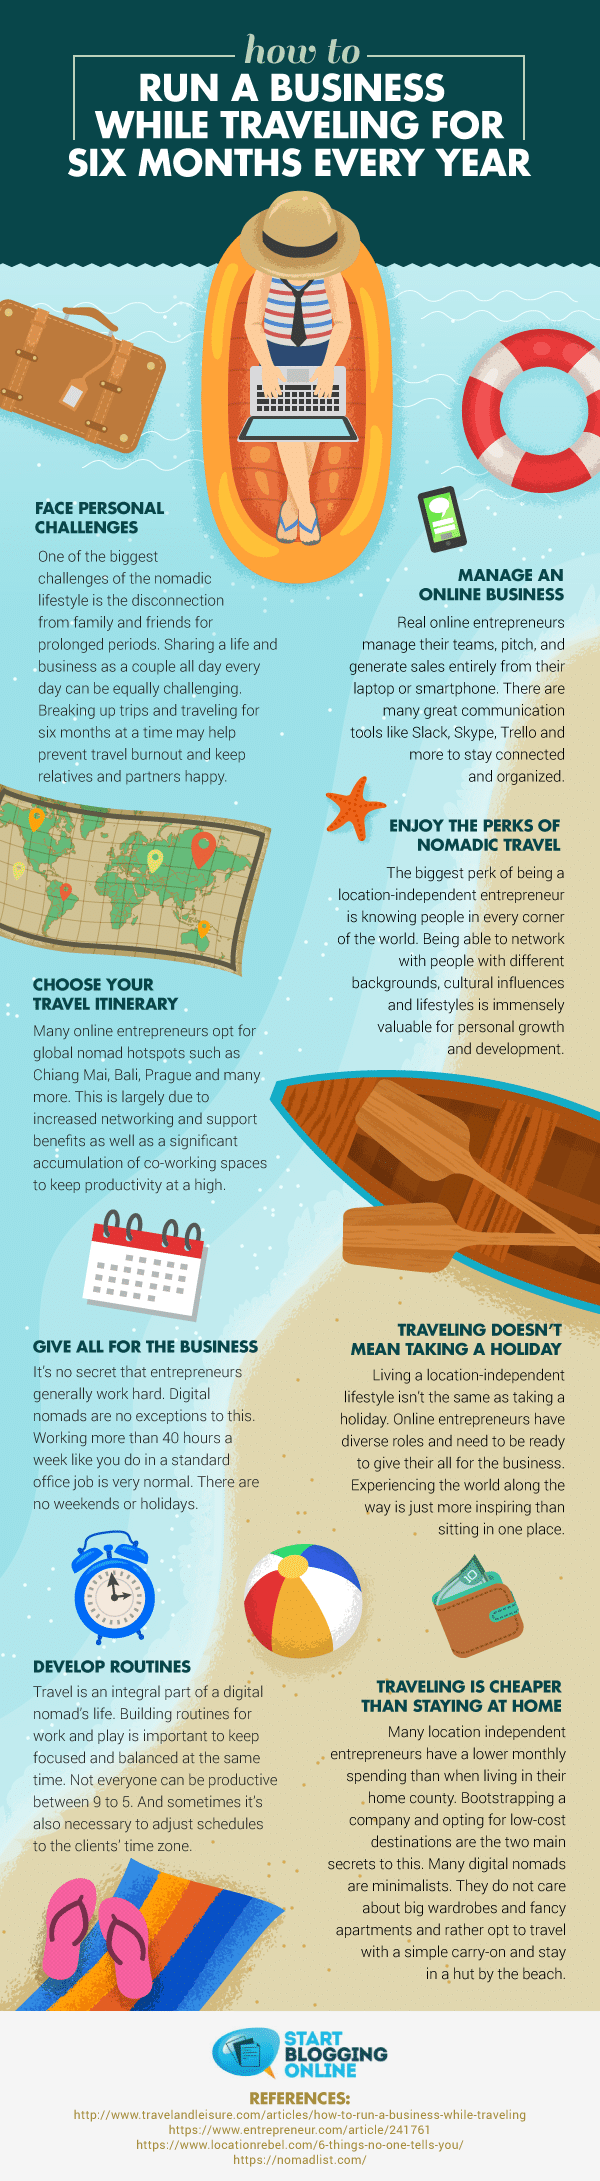 how-to-run-a-business-while-traveling-1